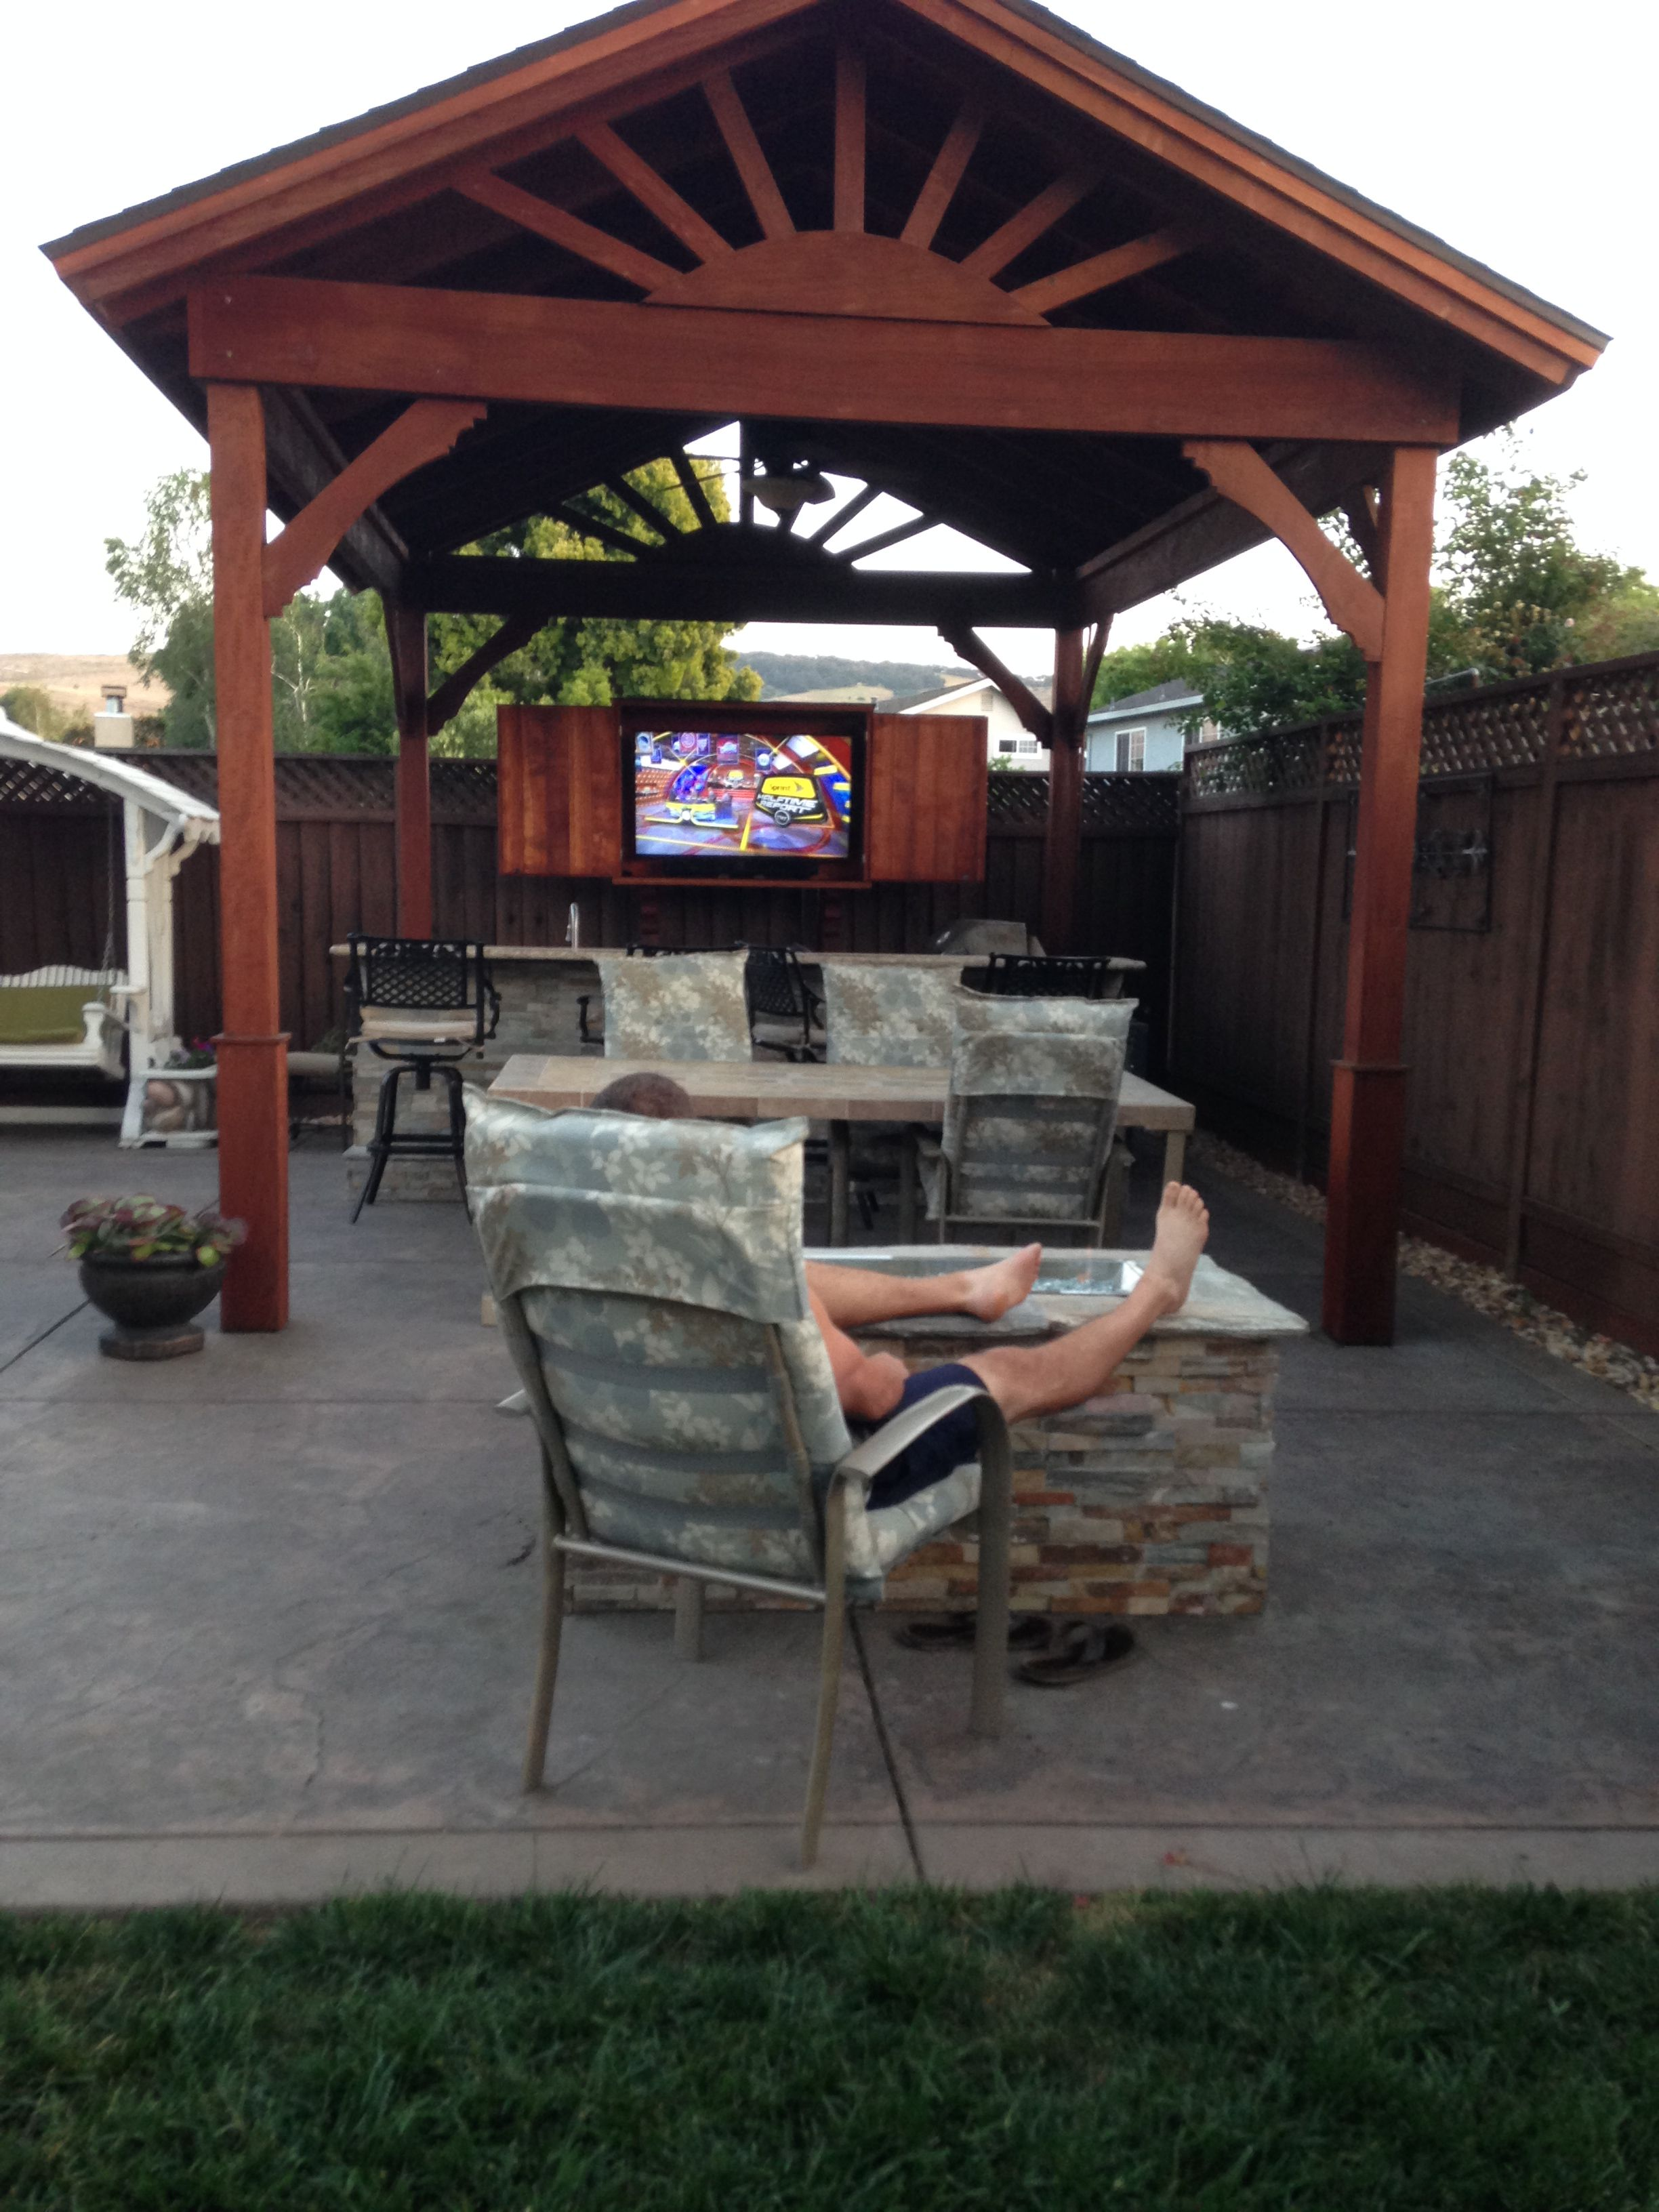 Before You Install A Tv Outside Consider These 5 Things